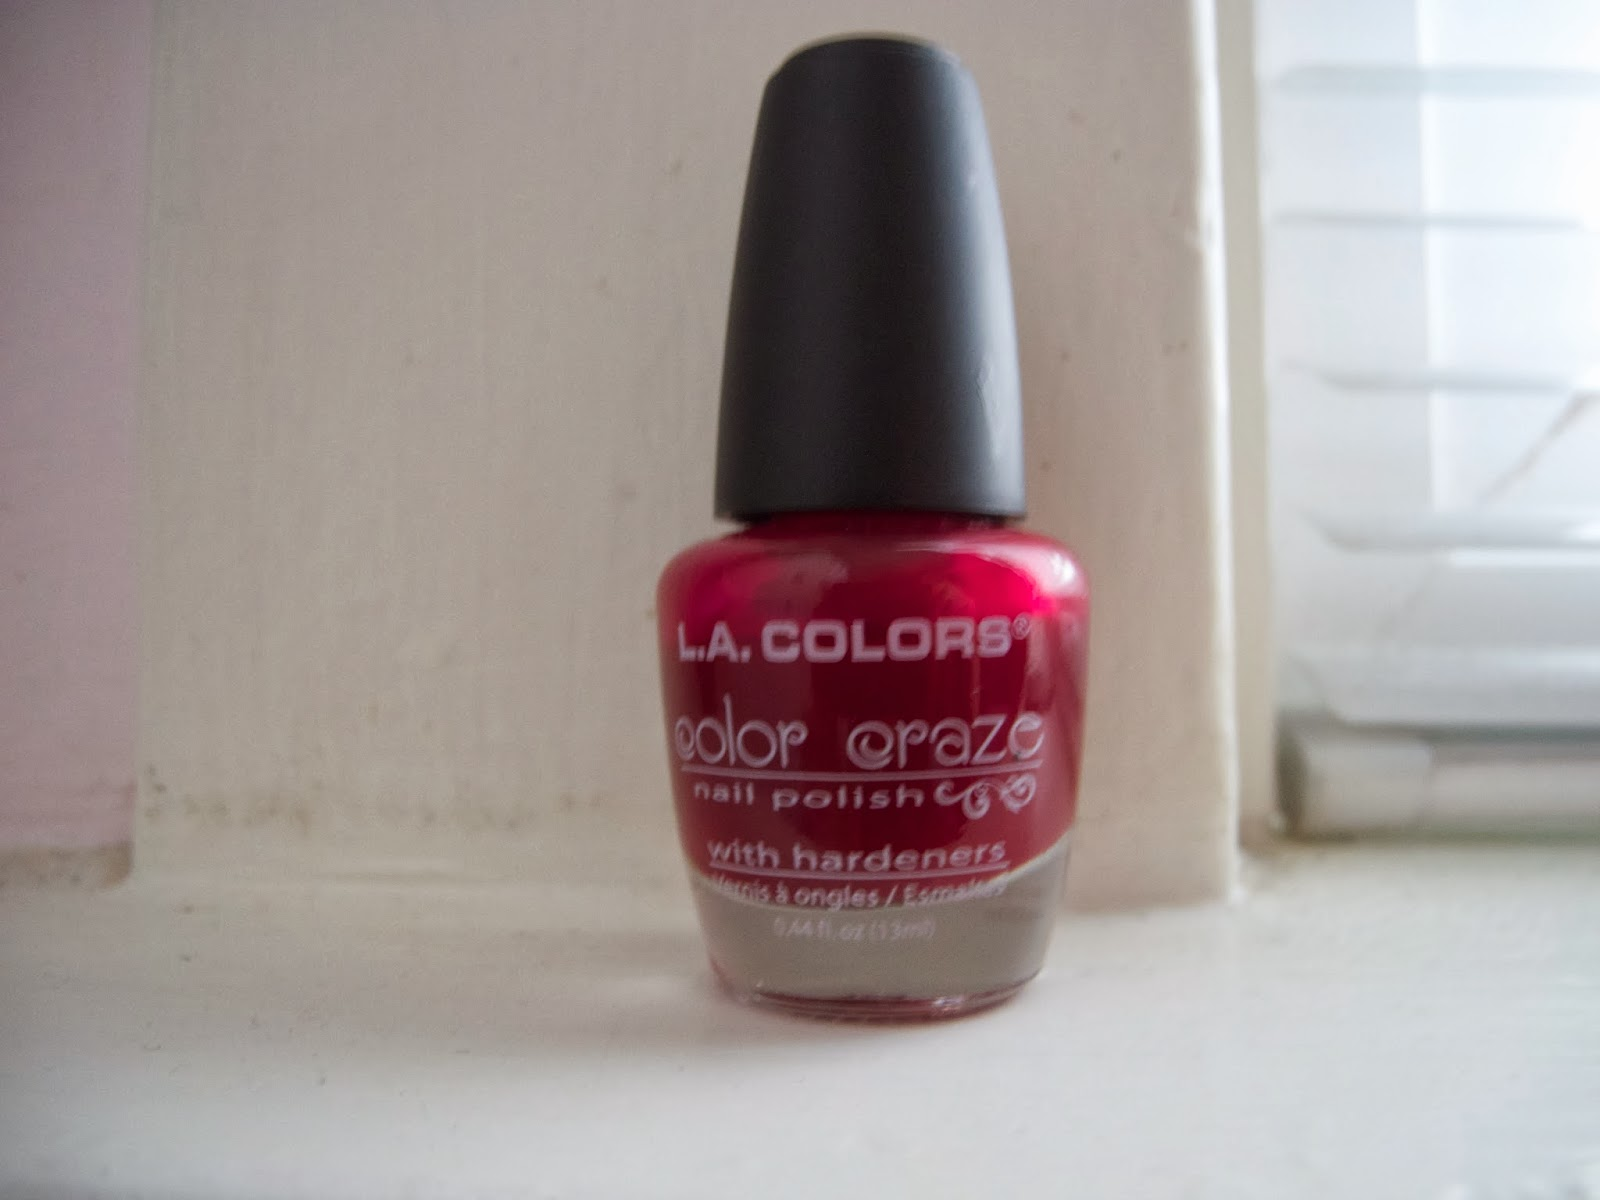 so weird: L.A. Colors color craze nail polish ♥ Transformer Review